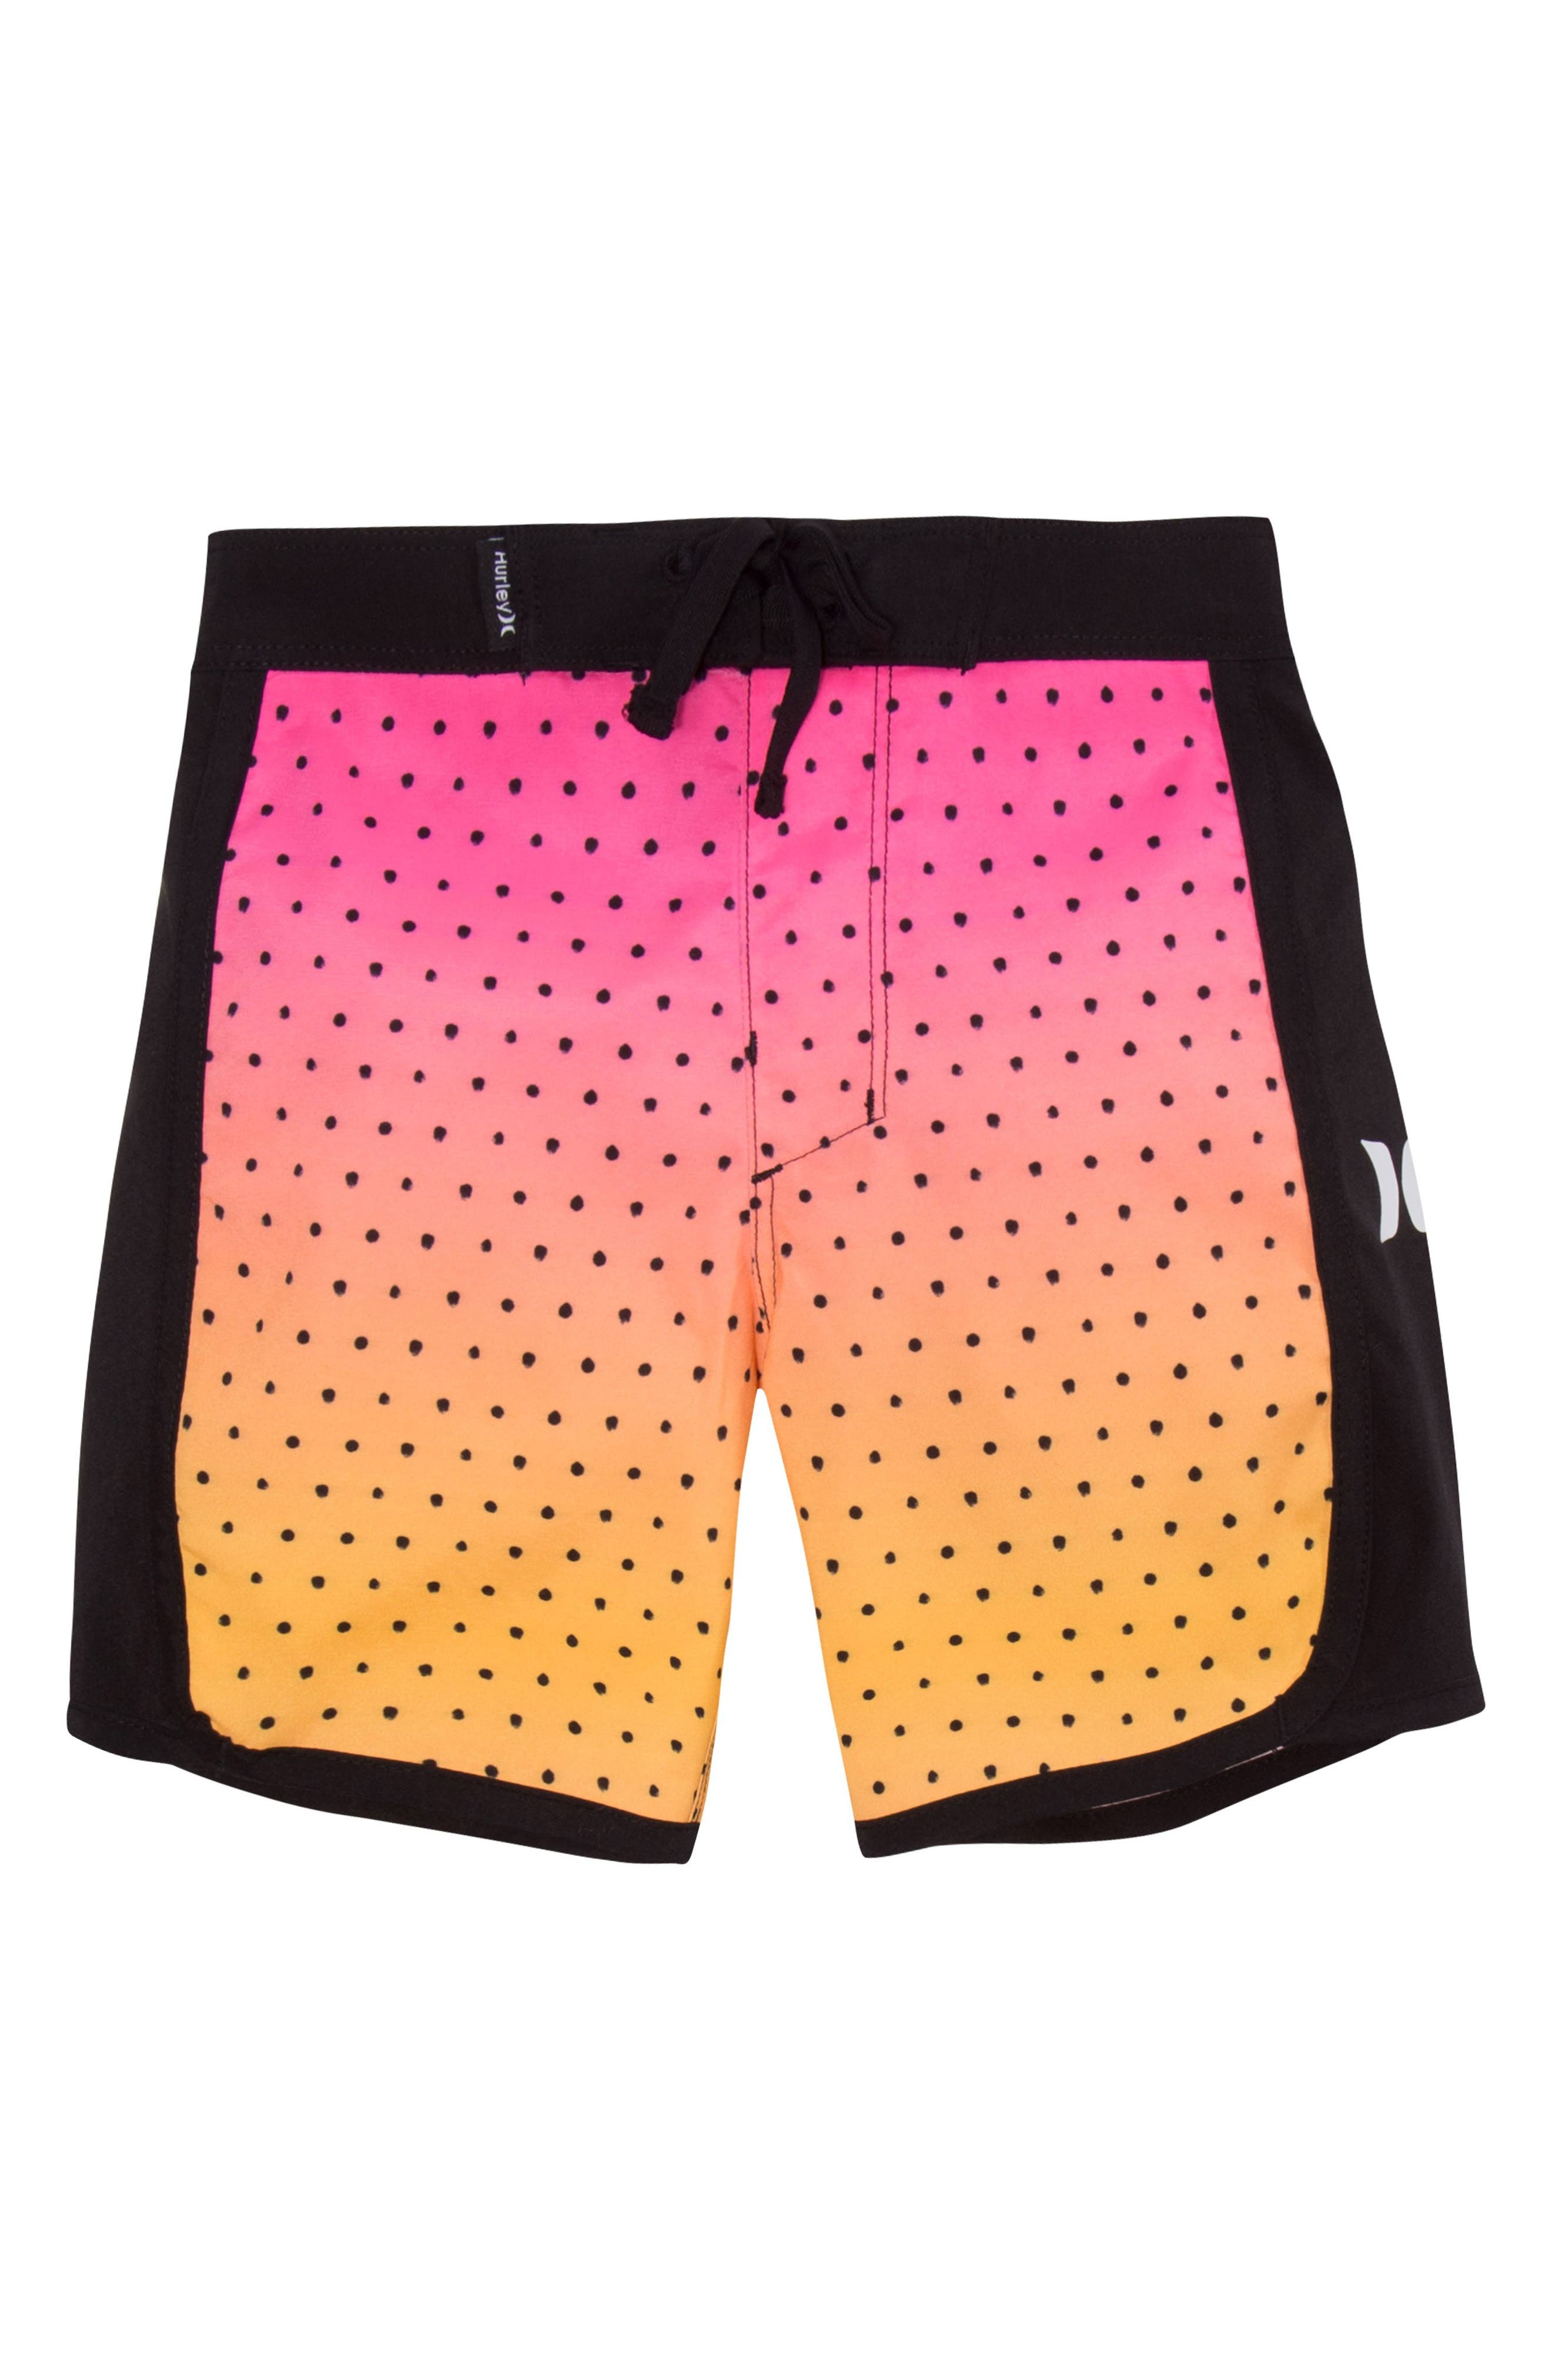 Third Reef Board Shorts,                         Main,                         color, Hyper Pink